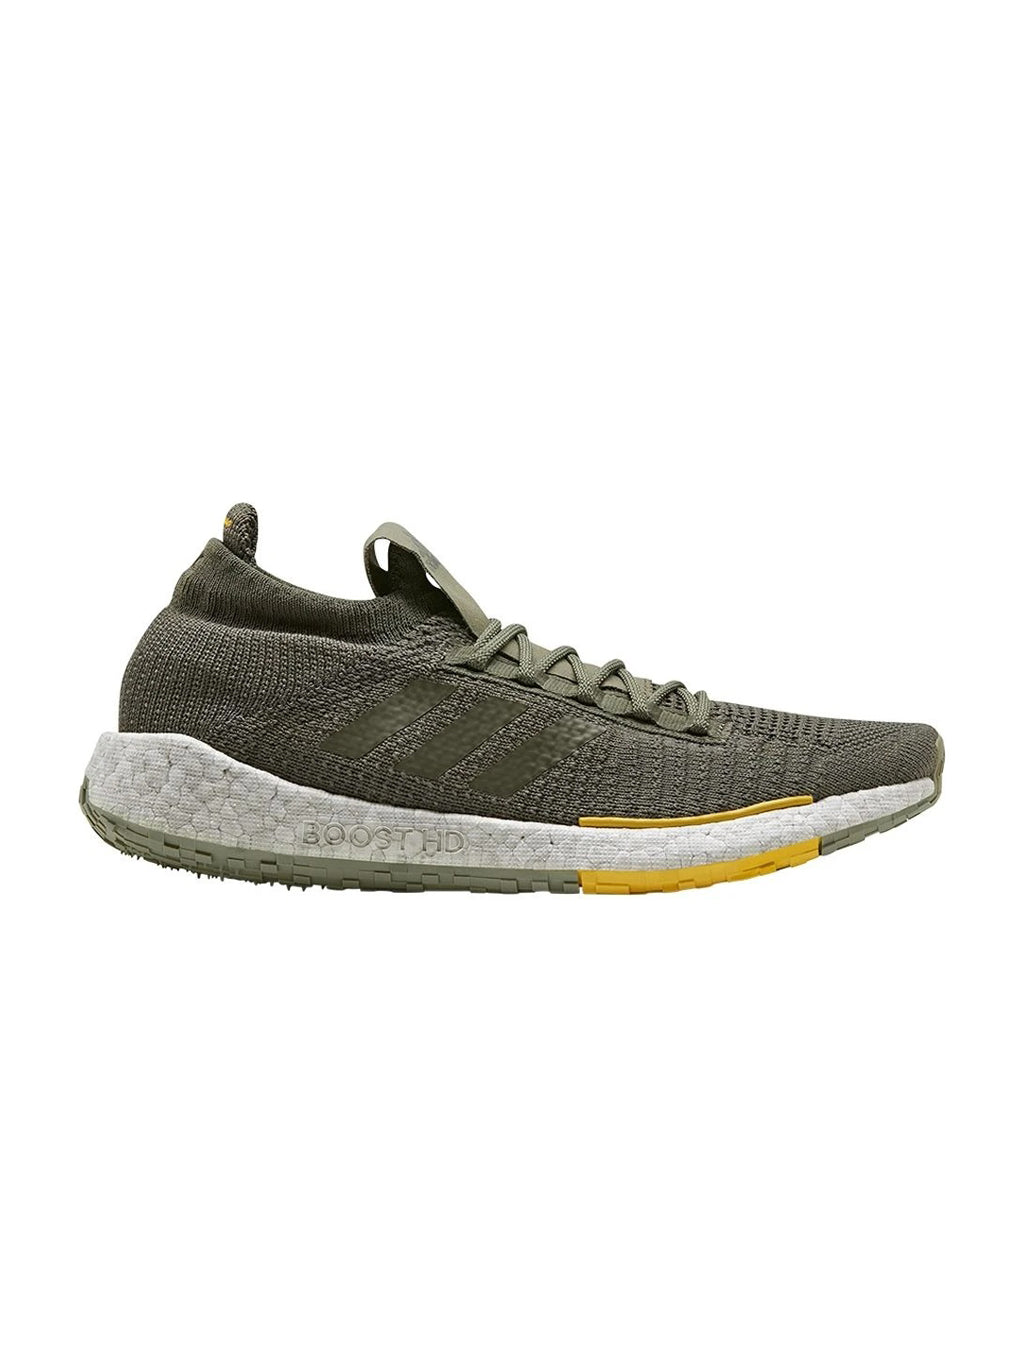 Khaki Monocle Pulse Boost HD Sneakers